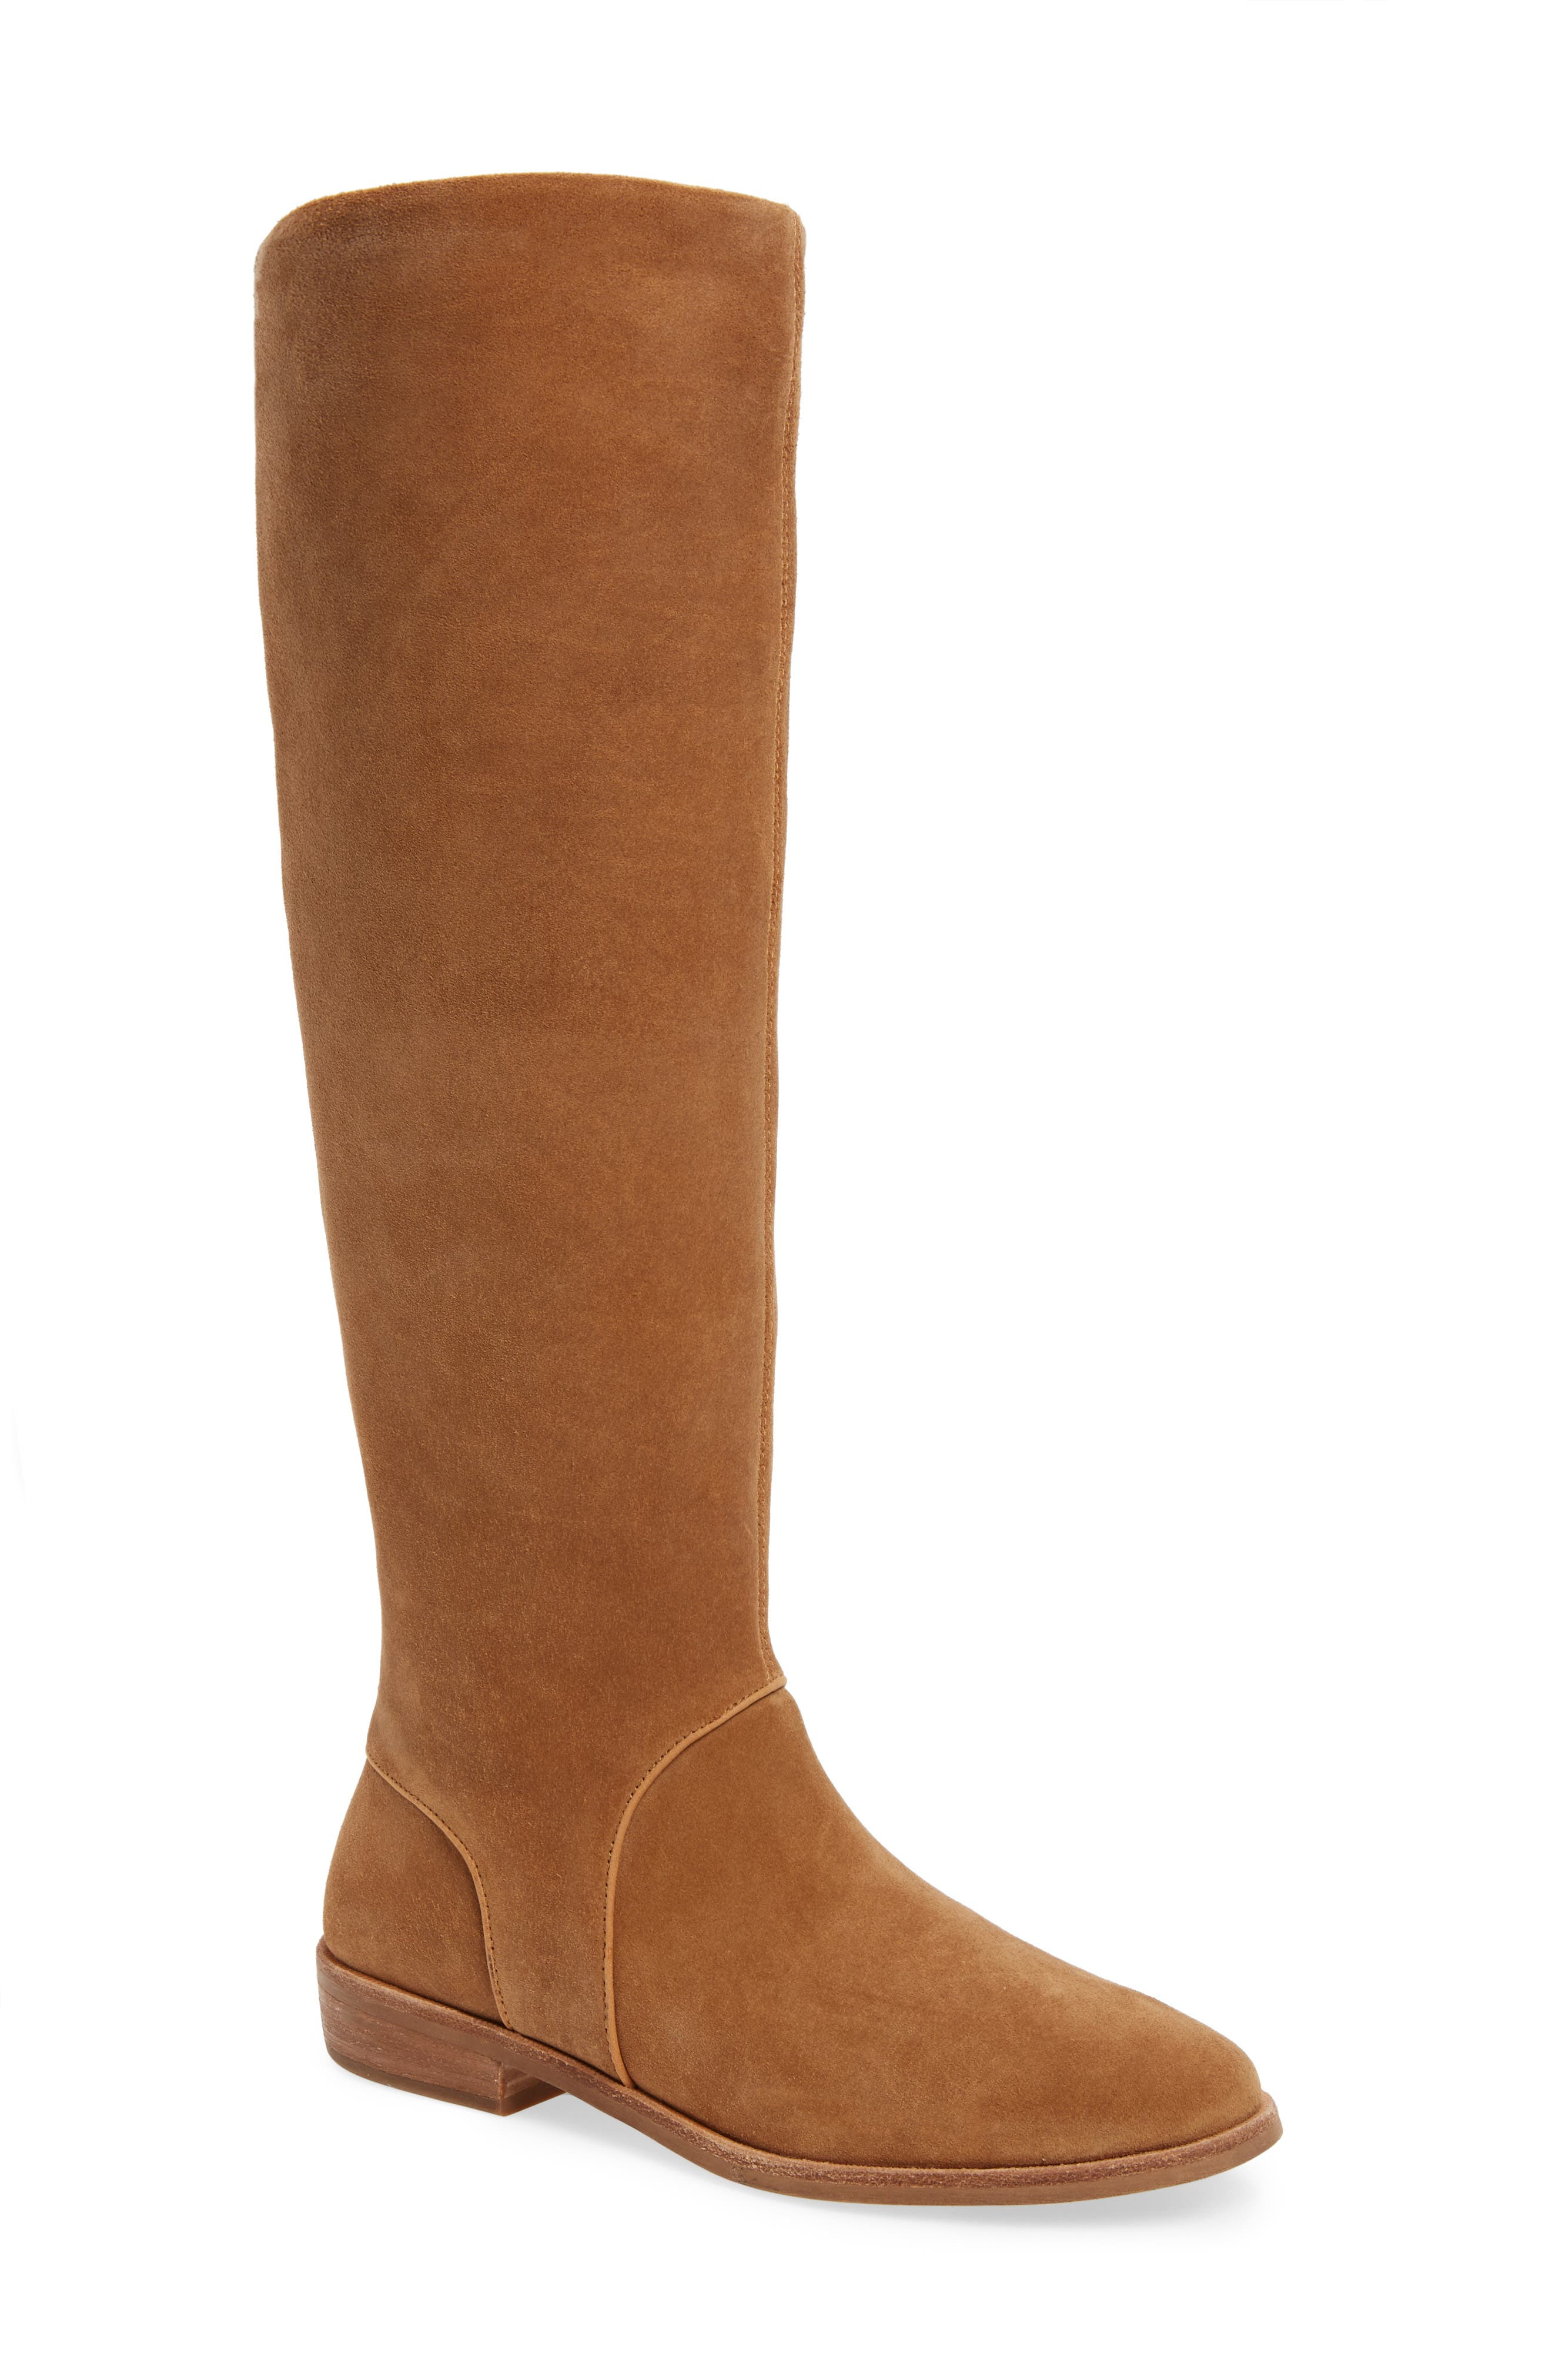 Main Image - UGG® Daley Tall Boot (Women)